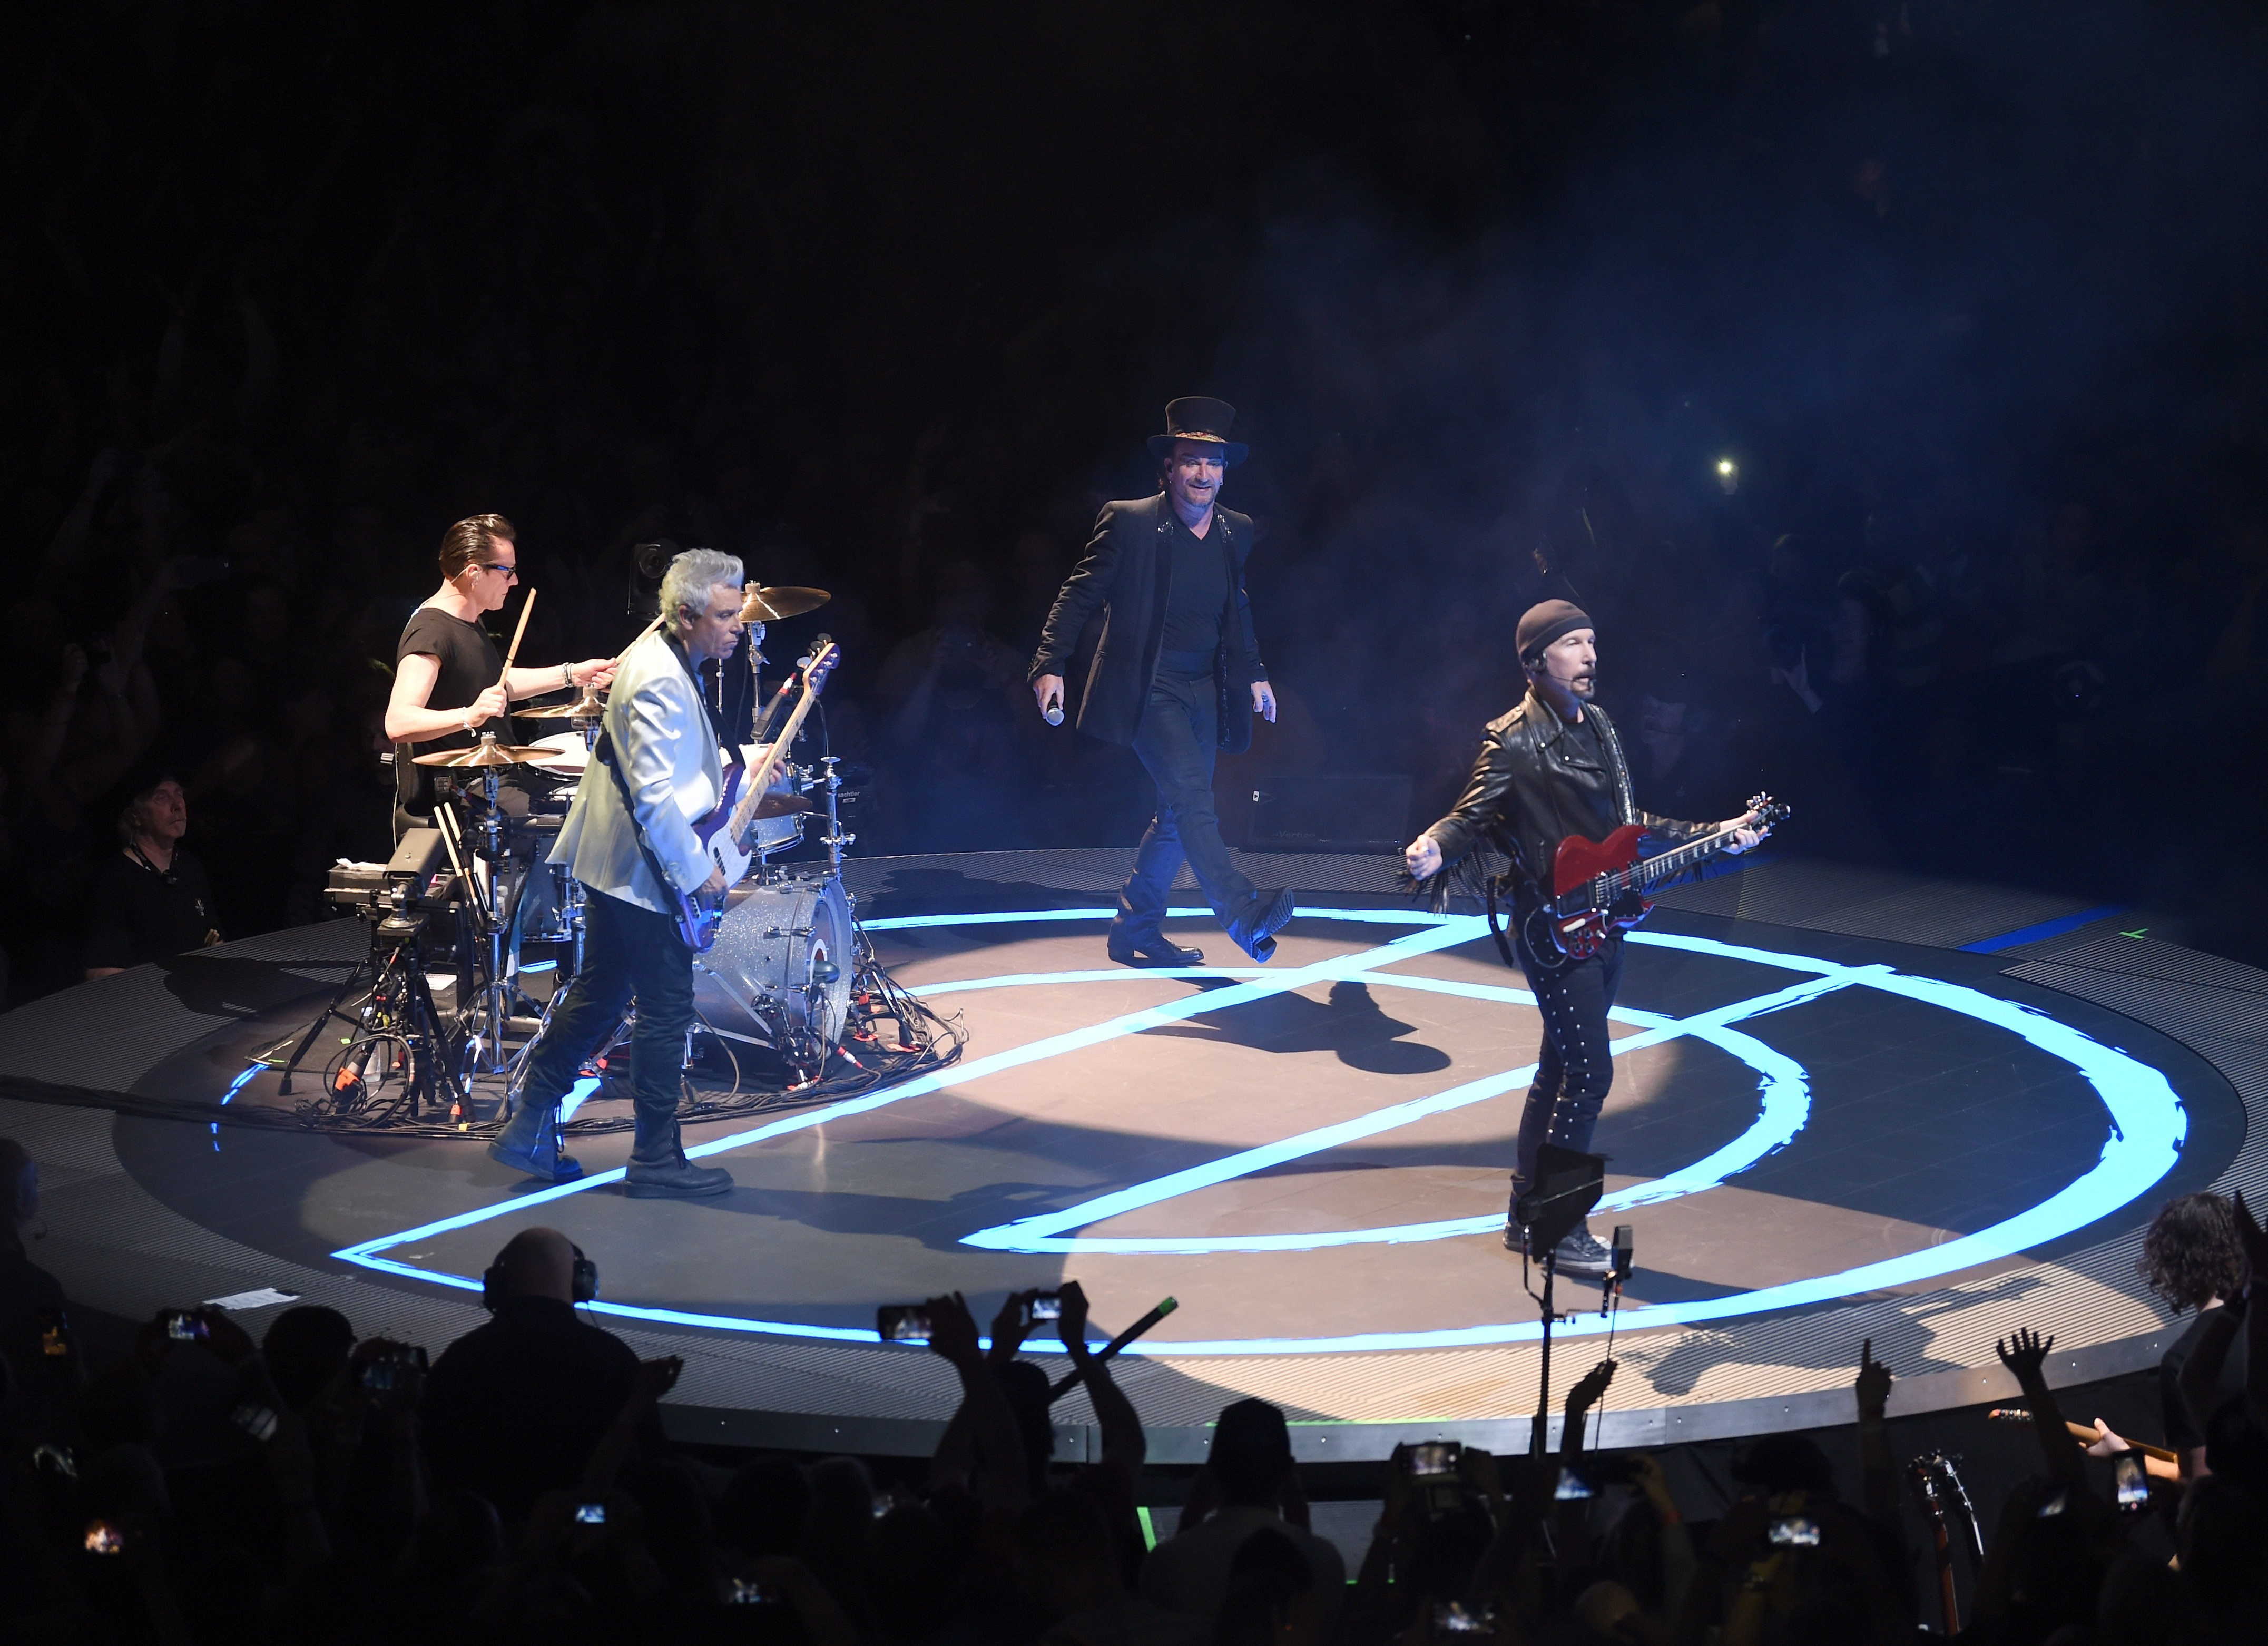 Os músicos do U2 durante um show recente (Foto: Getty Images)